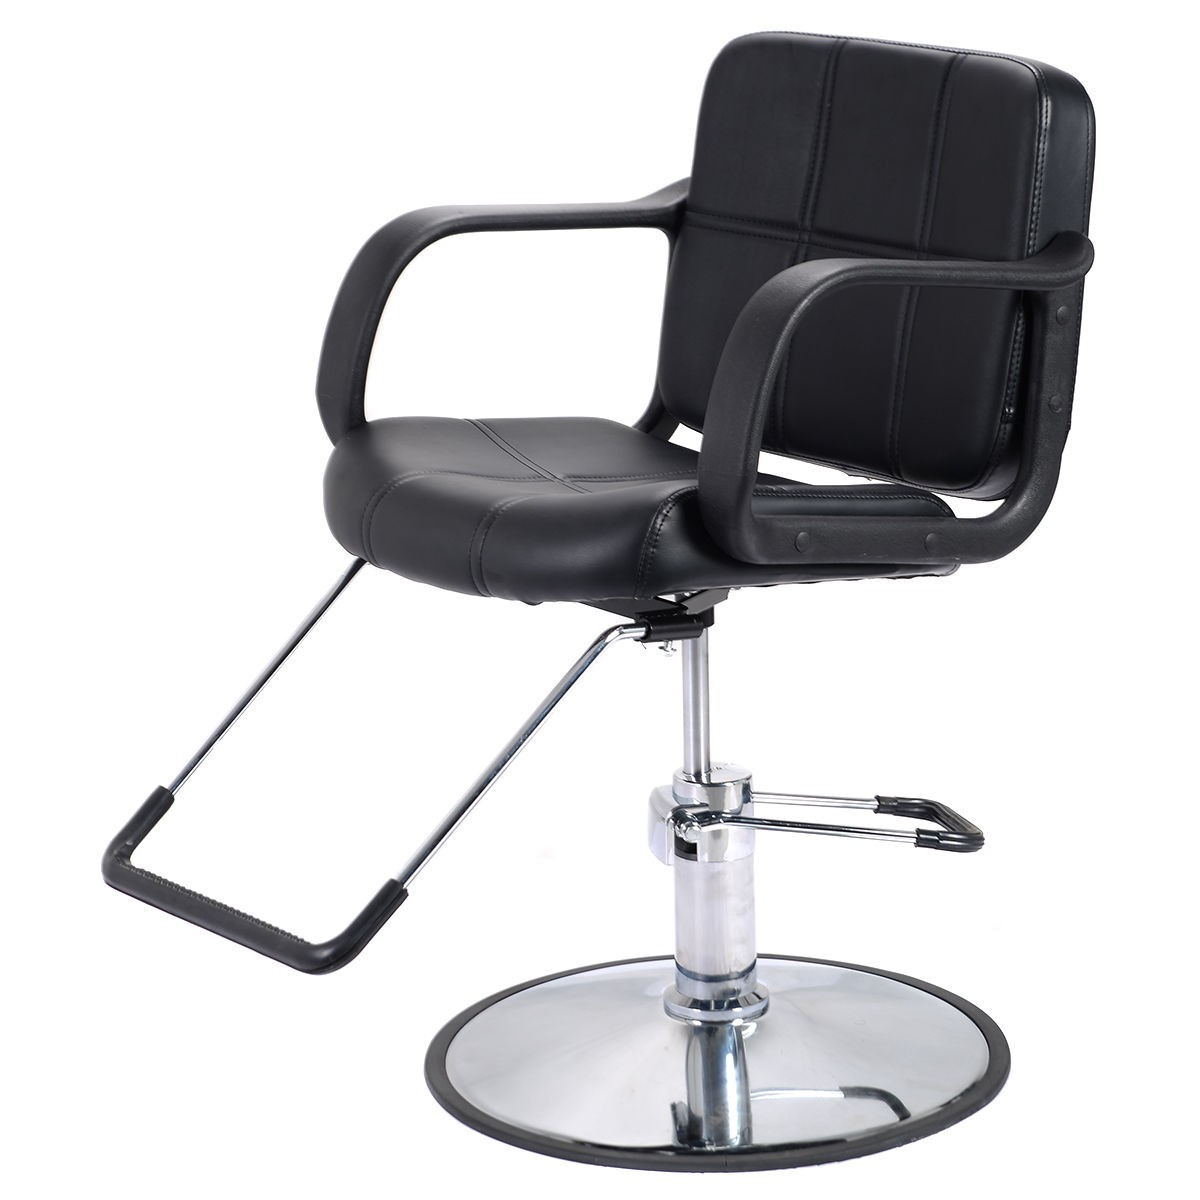 Hydraulic Chairs New Hydraulic Barber Chair Salon Beauty Spa Hair Styling